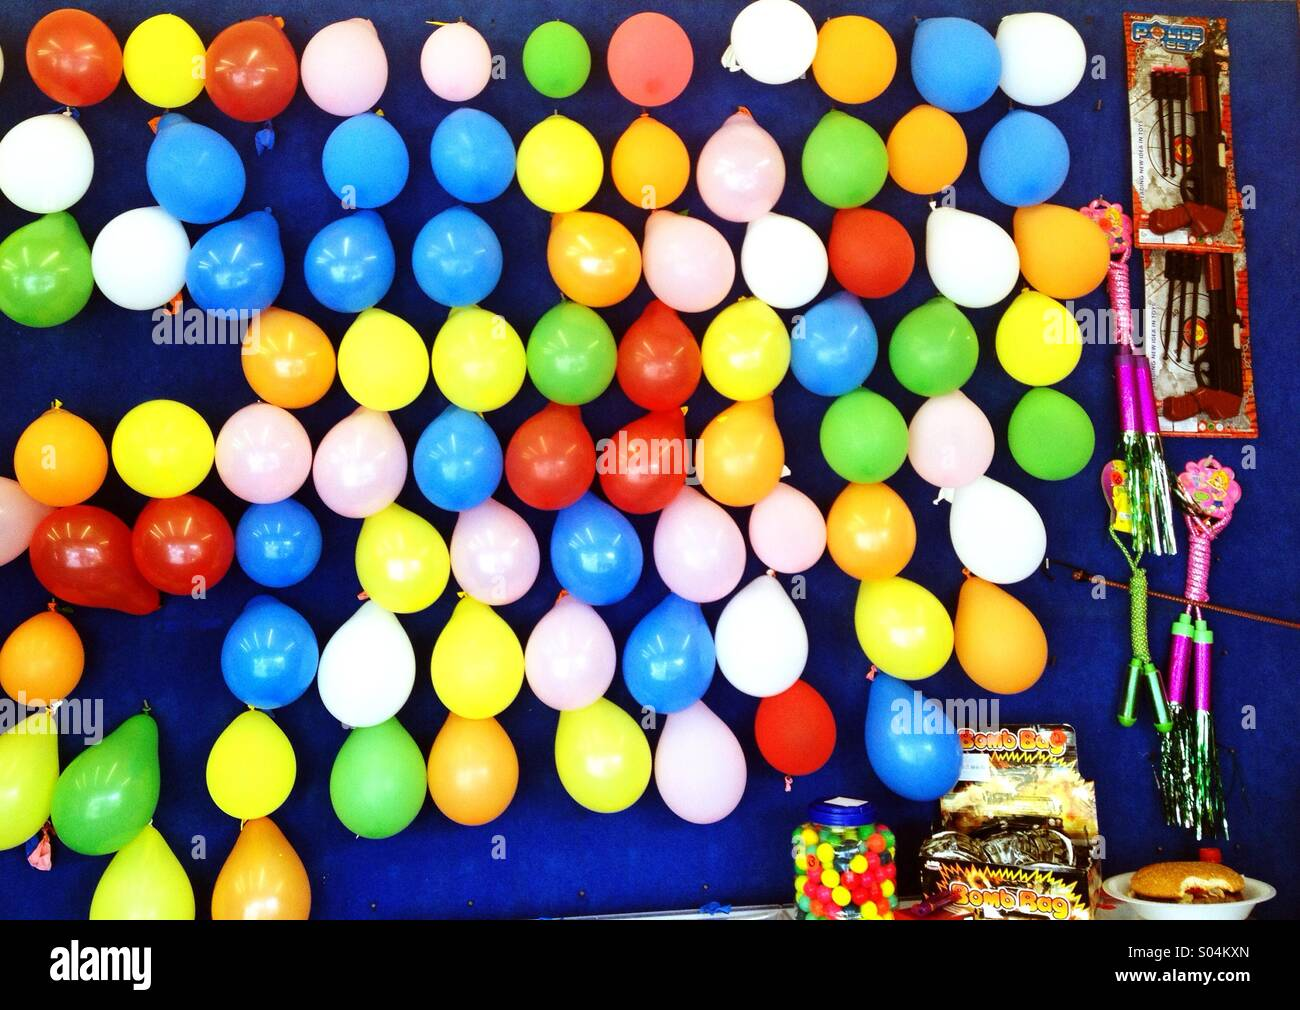 Balloons at fair - Stock Image